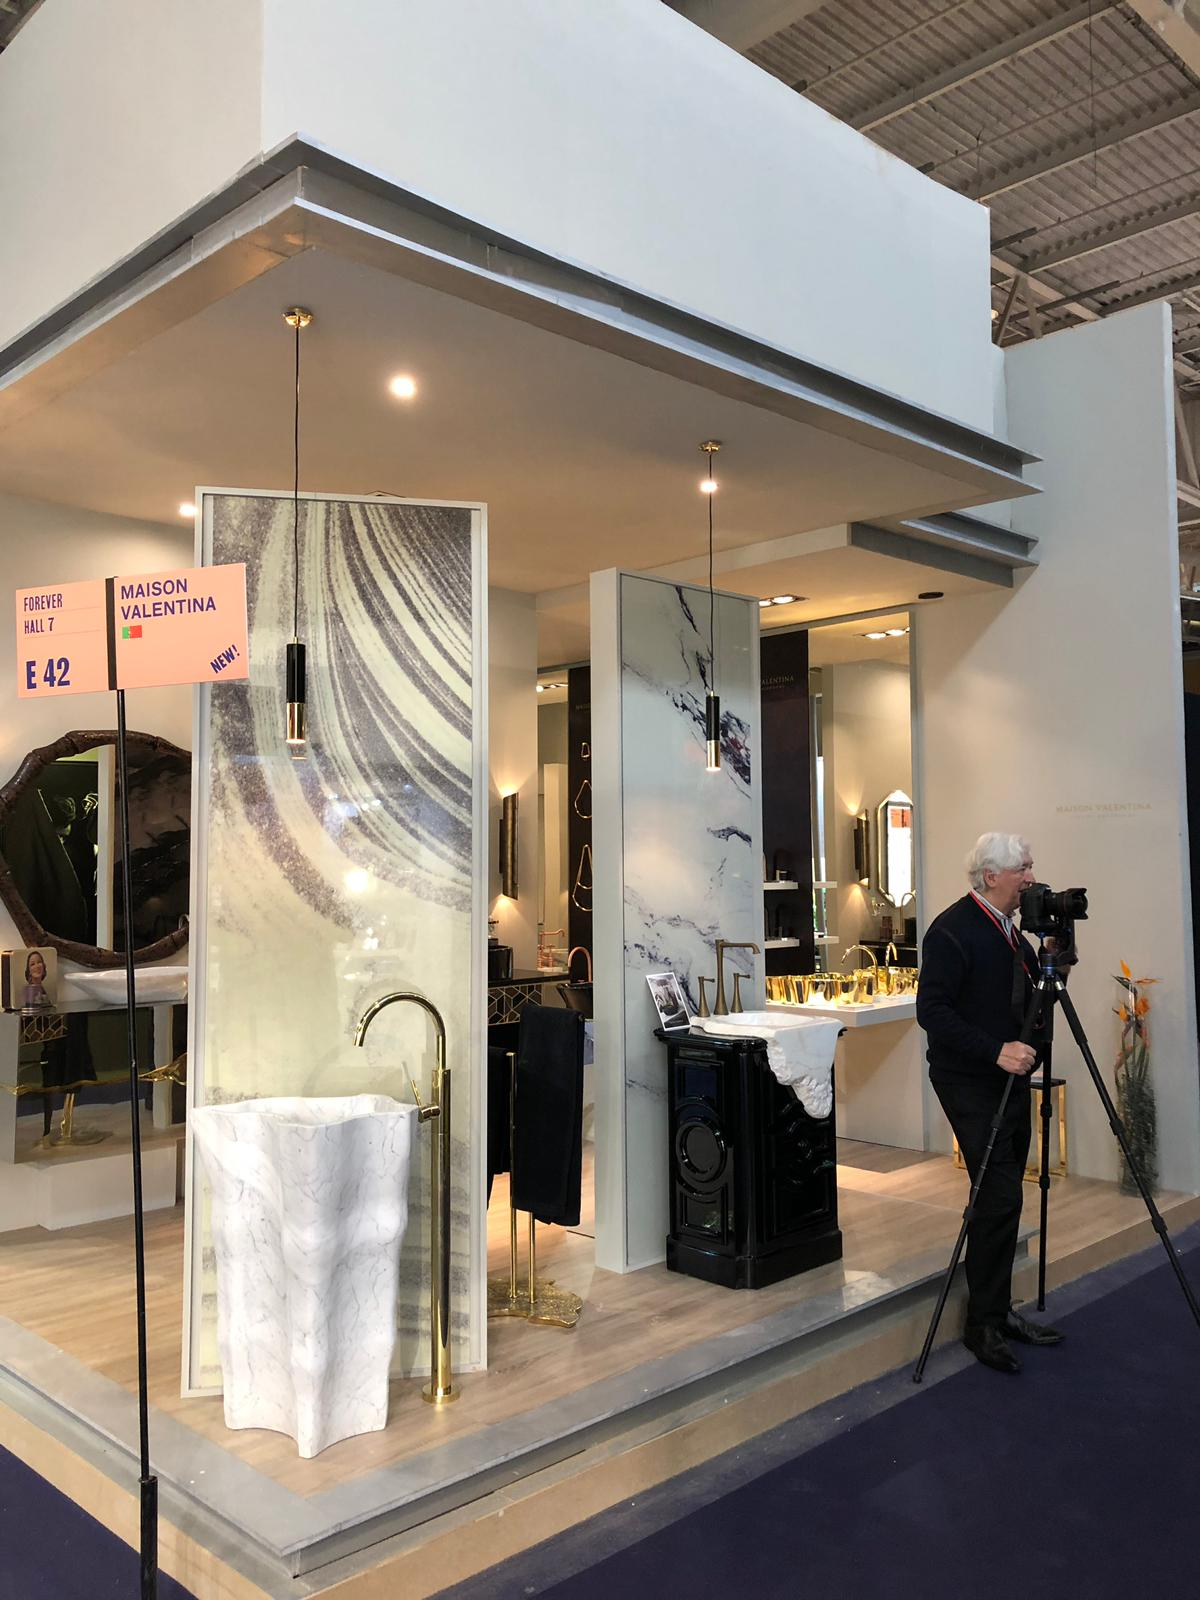 See Highlights from Maison Valentina's Stand at Maison et Objet 2019 (3) maison et objet See Highlights from Maison Valentina's Stand at Maison et Objet 2019 See Highlights from Maison Valentinas Stand at Maison et Objet 2019 3